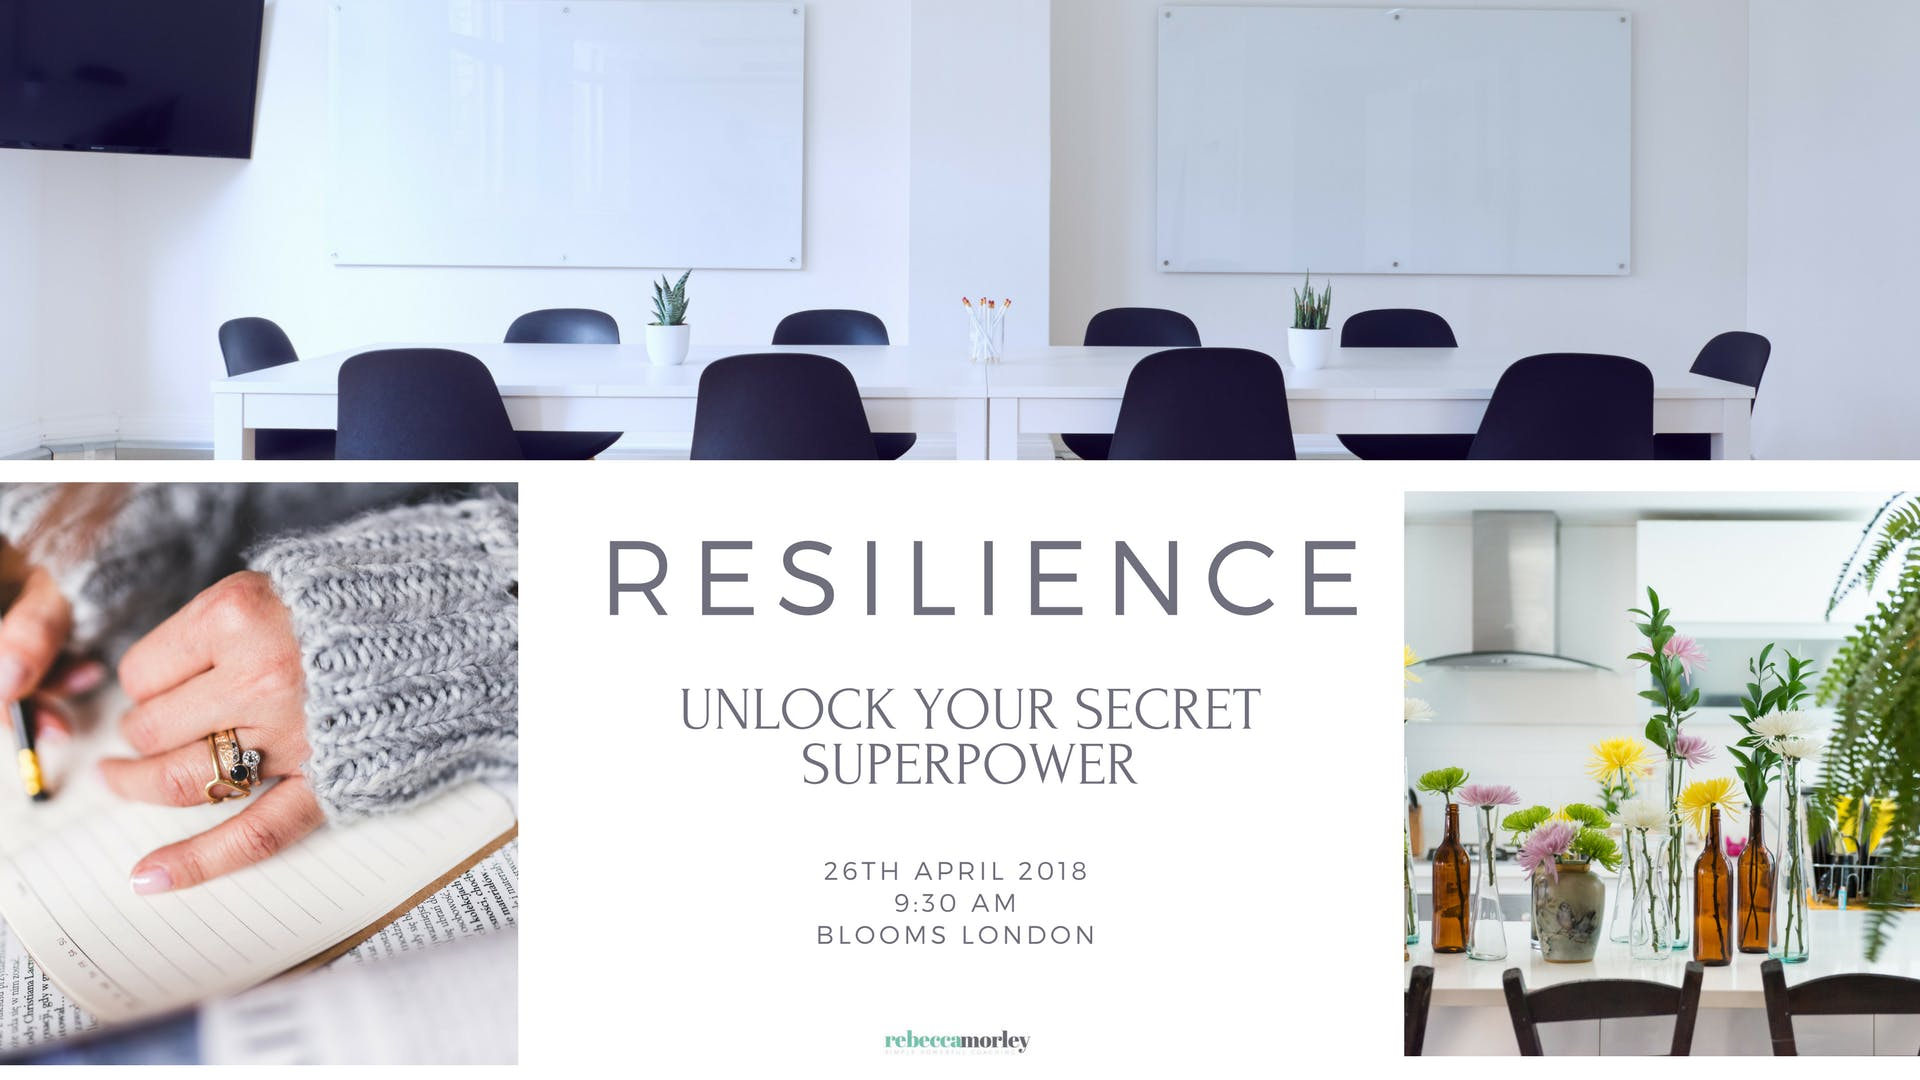 Resilience - Unlock your secret superpower (f